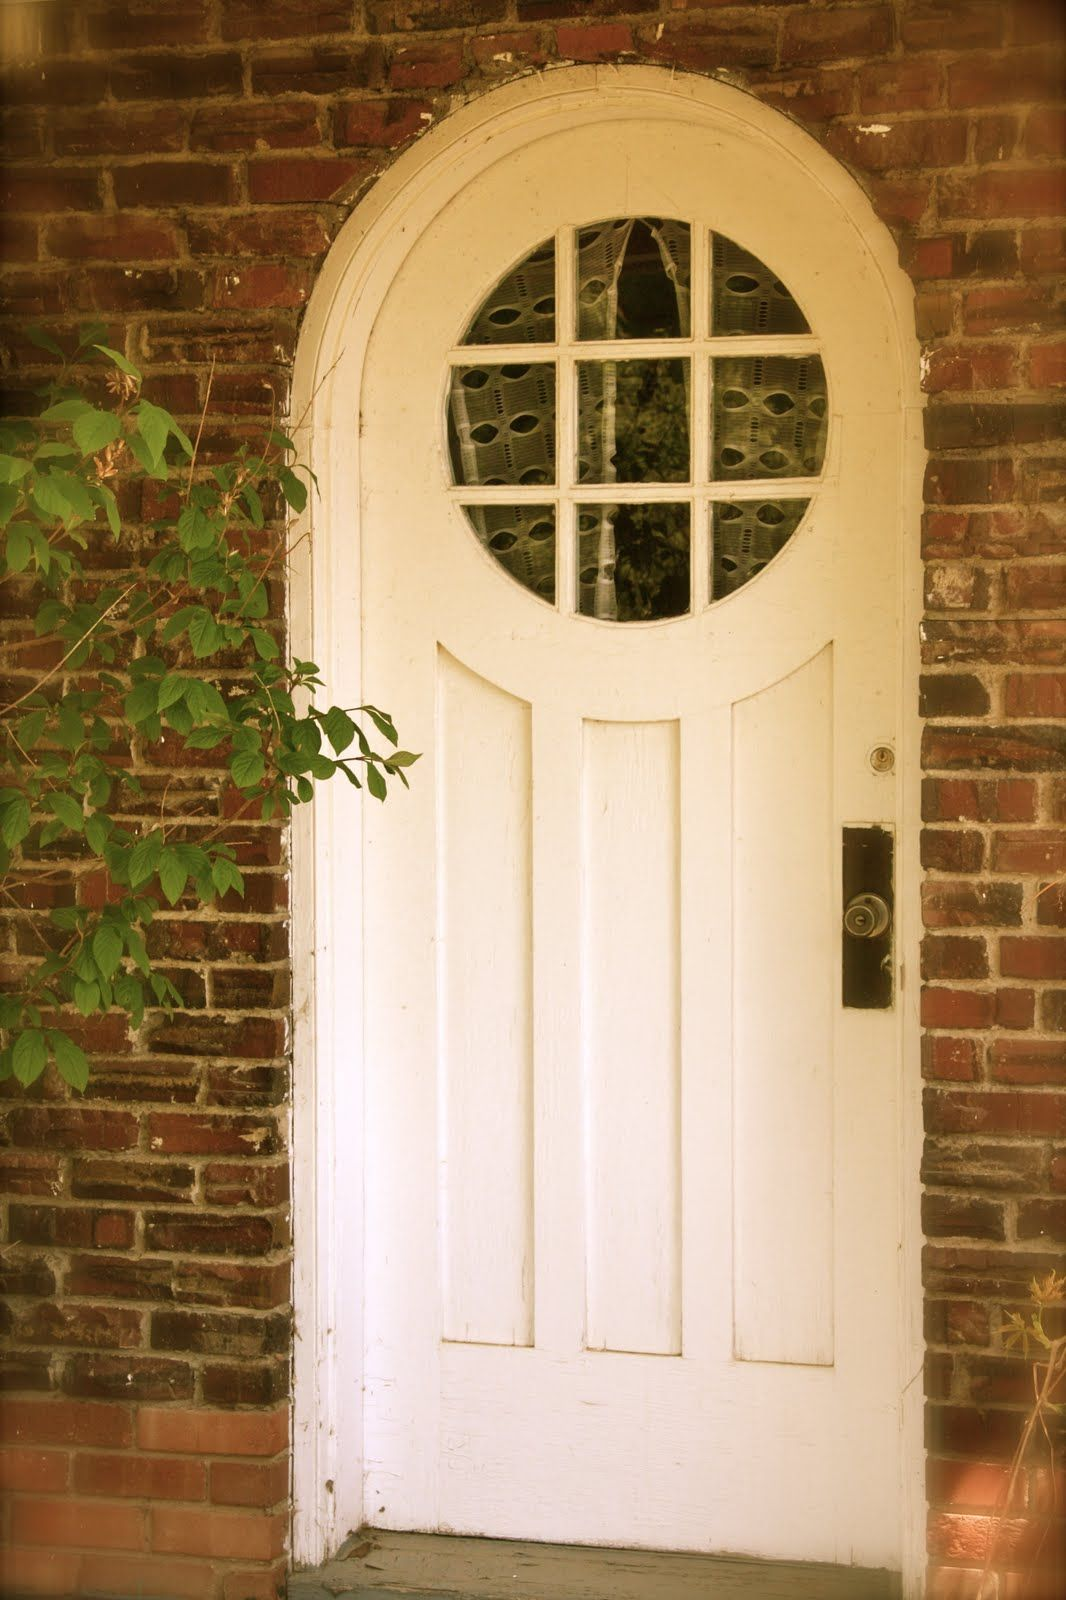 Country cottage front door with arched top and circular window with lights new front door for for Exterior door with round window